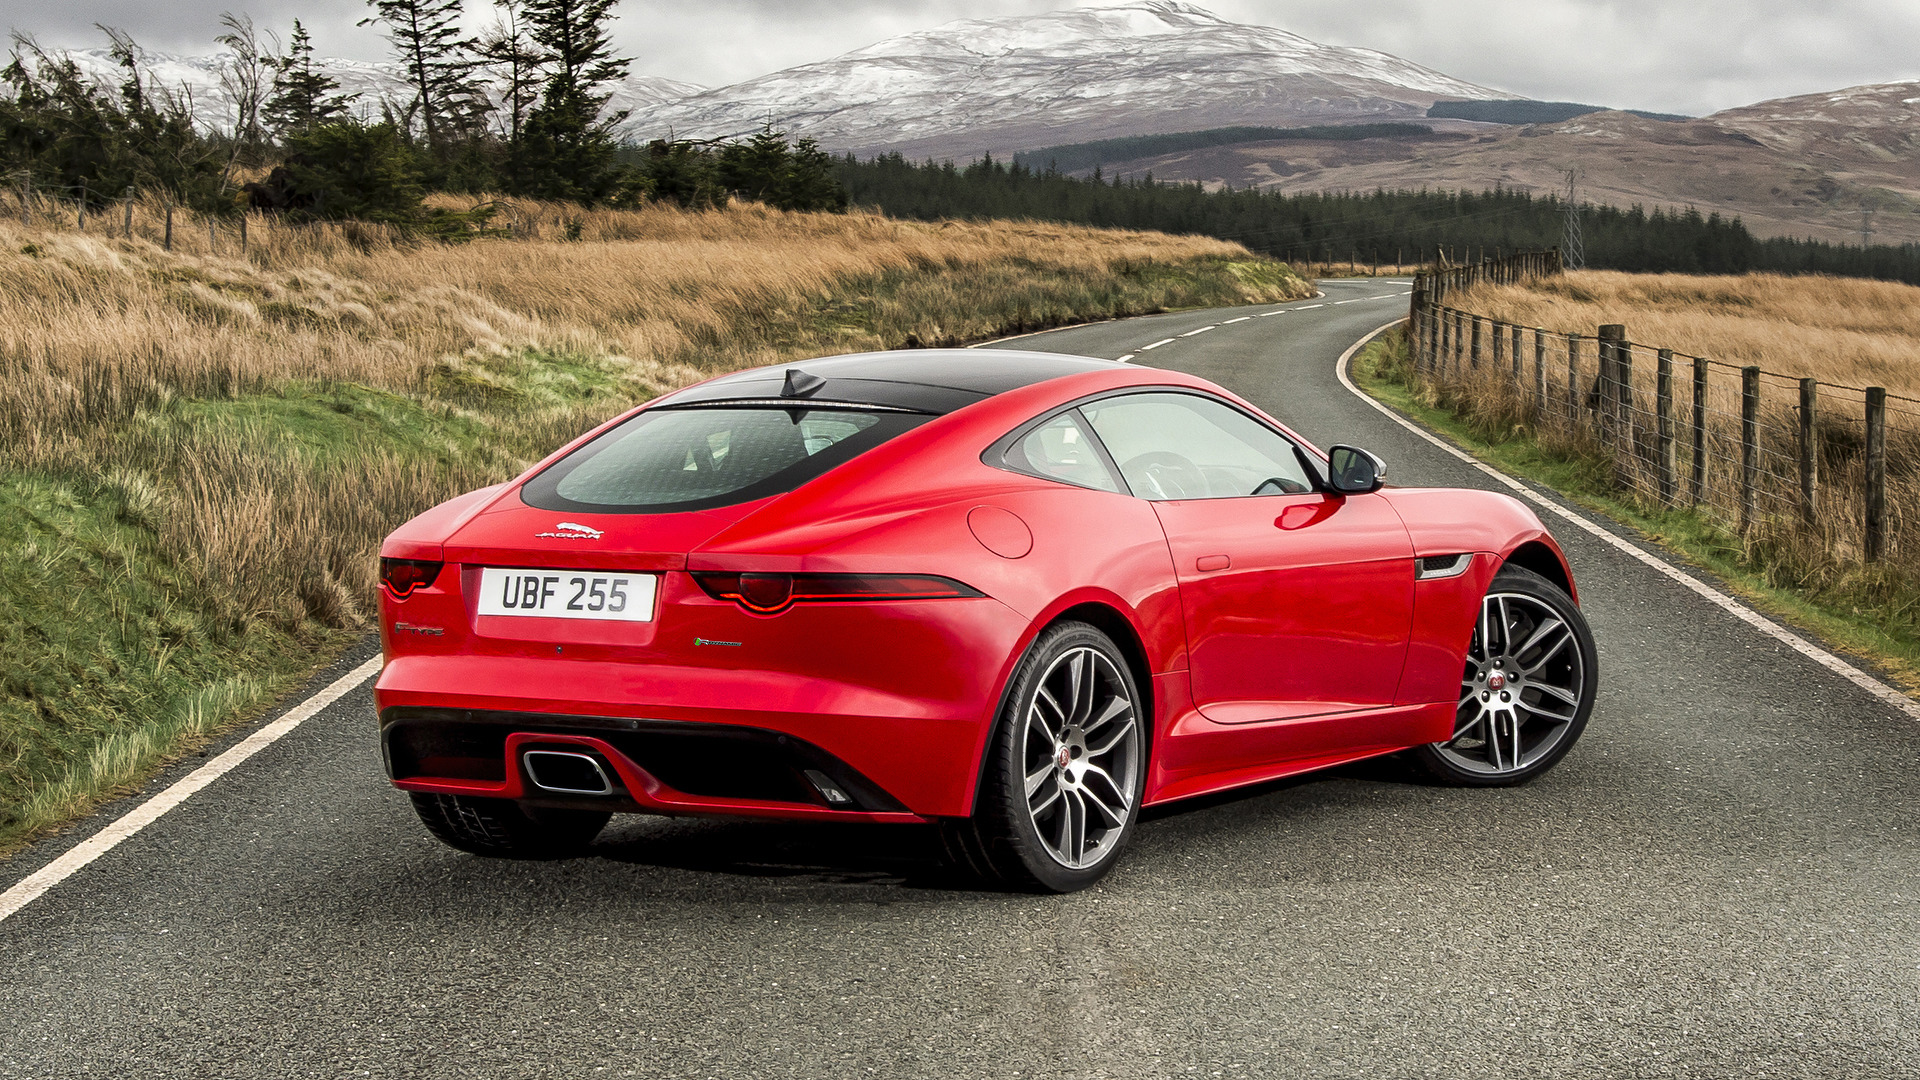 jaguar f type spotted with p380 badge new jlr naming convention. Black Bedroom Furniture Sets. Home Design Ideas